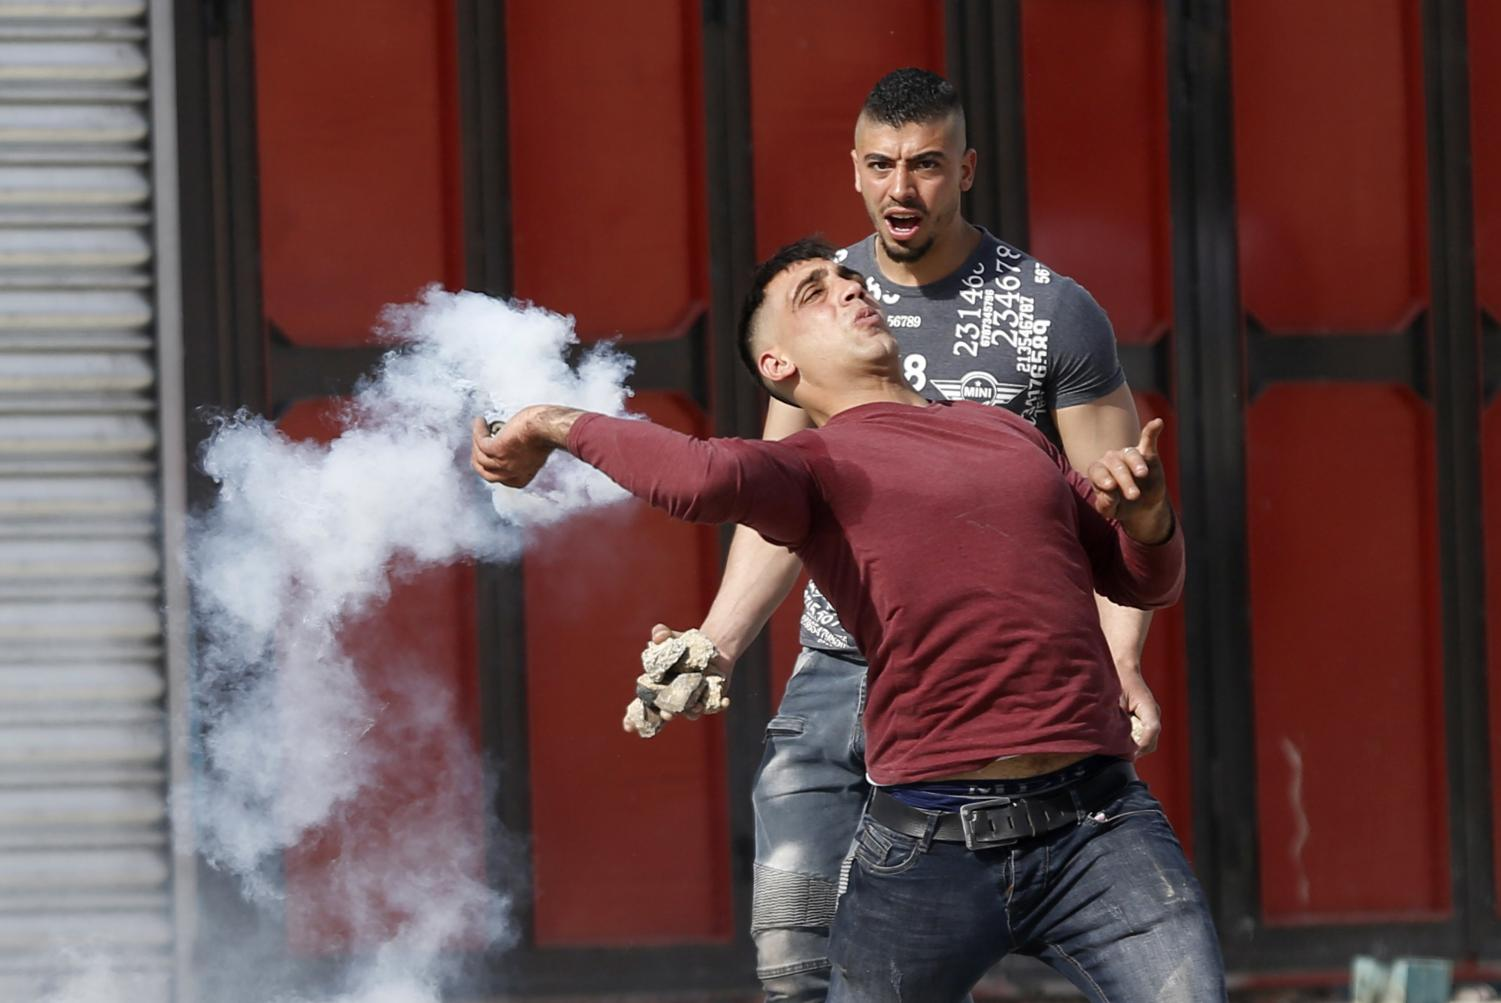 A Palestinian man hurls a tear gas grenade back at Israeli police forces in a clash on the Gaza Strip. (Photo courtesy of the Associated Press)